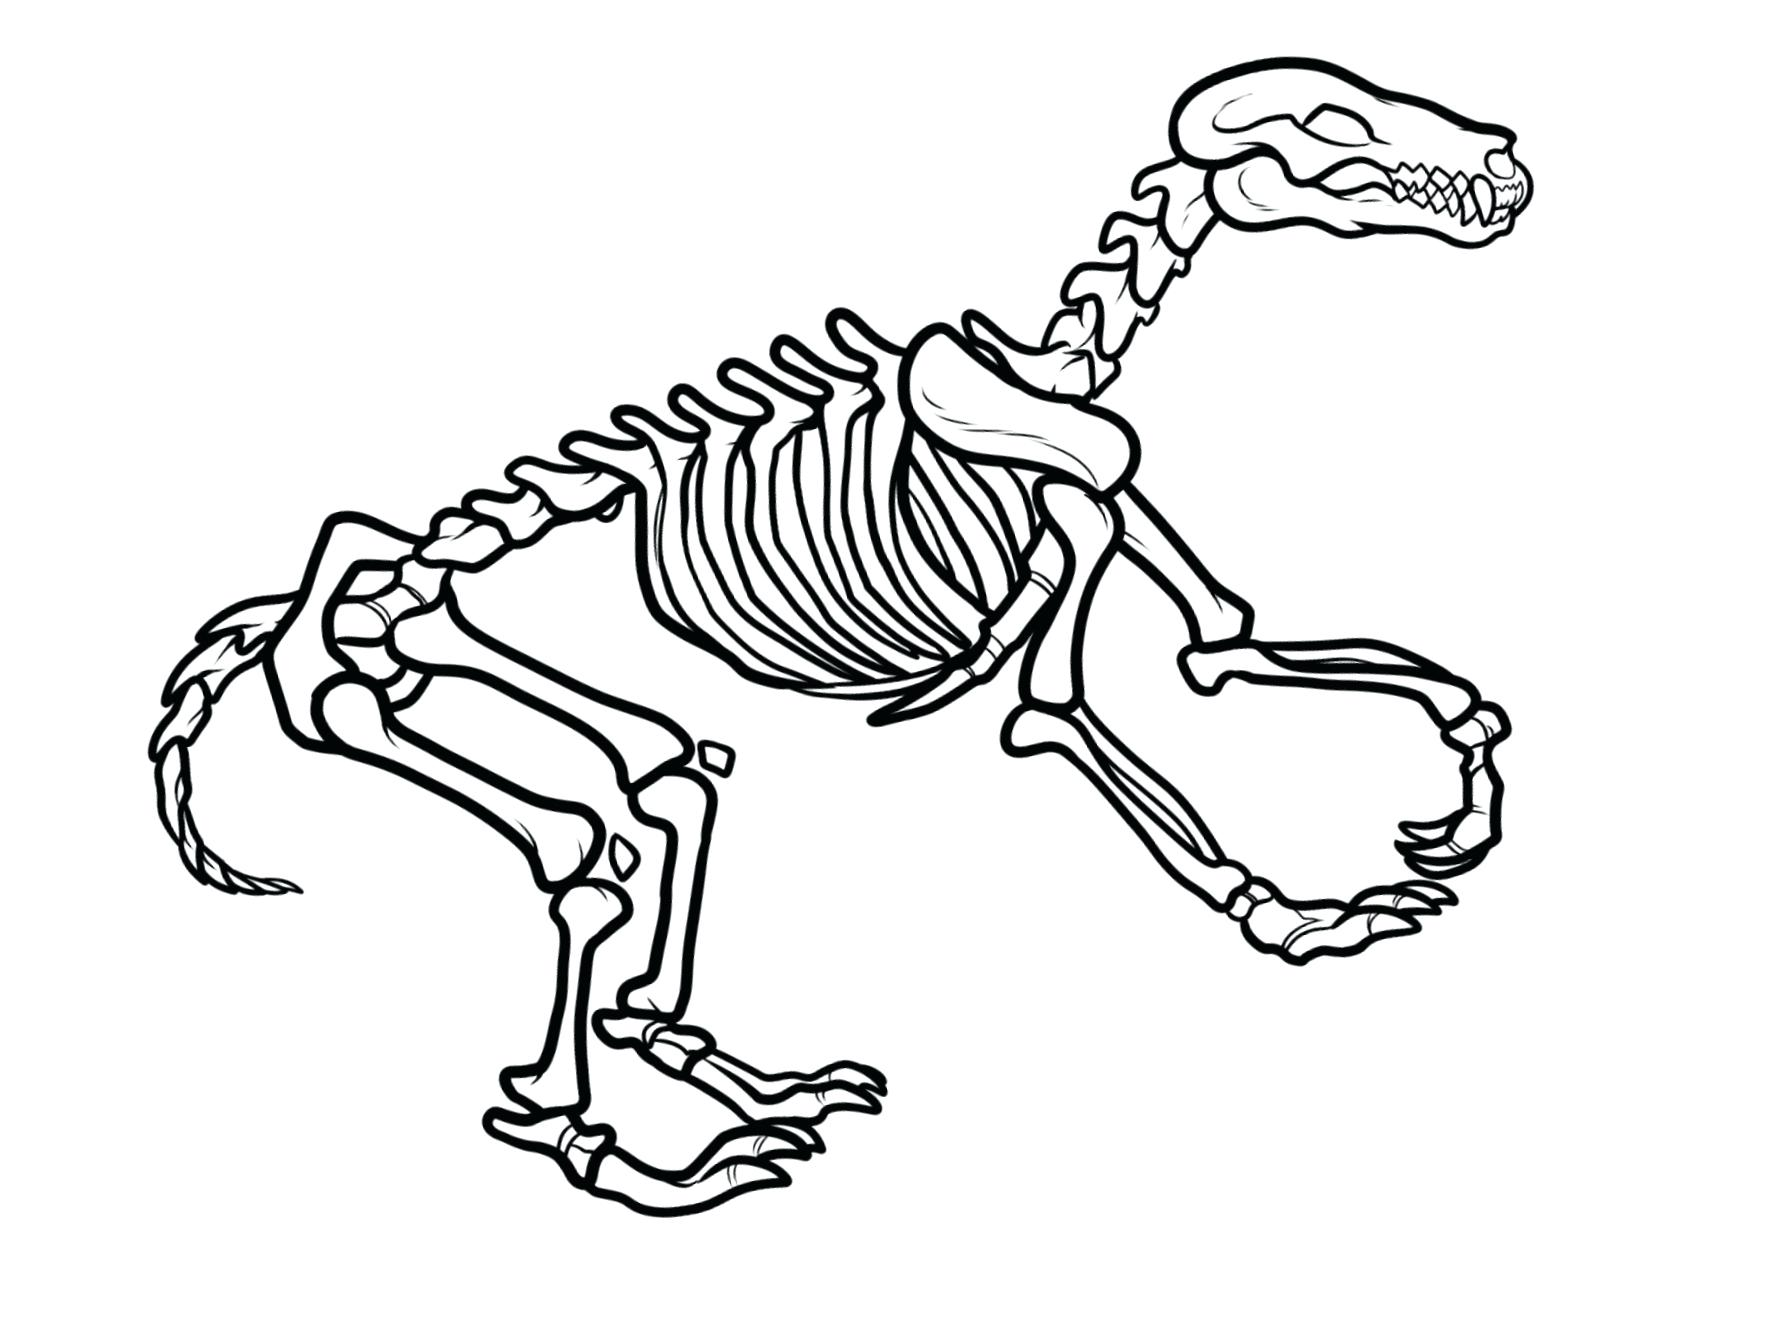 1792x1323 Coloring Dinosaur Bones Coloring Pages Page Free Skeleton